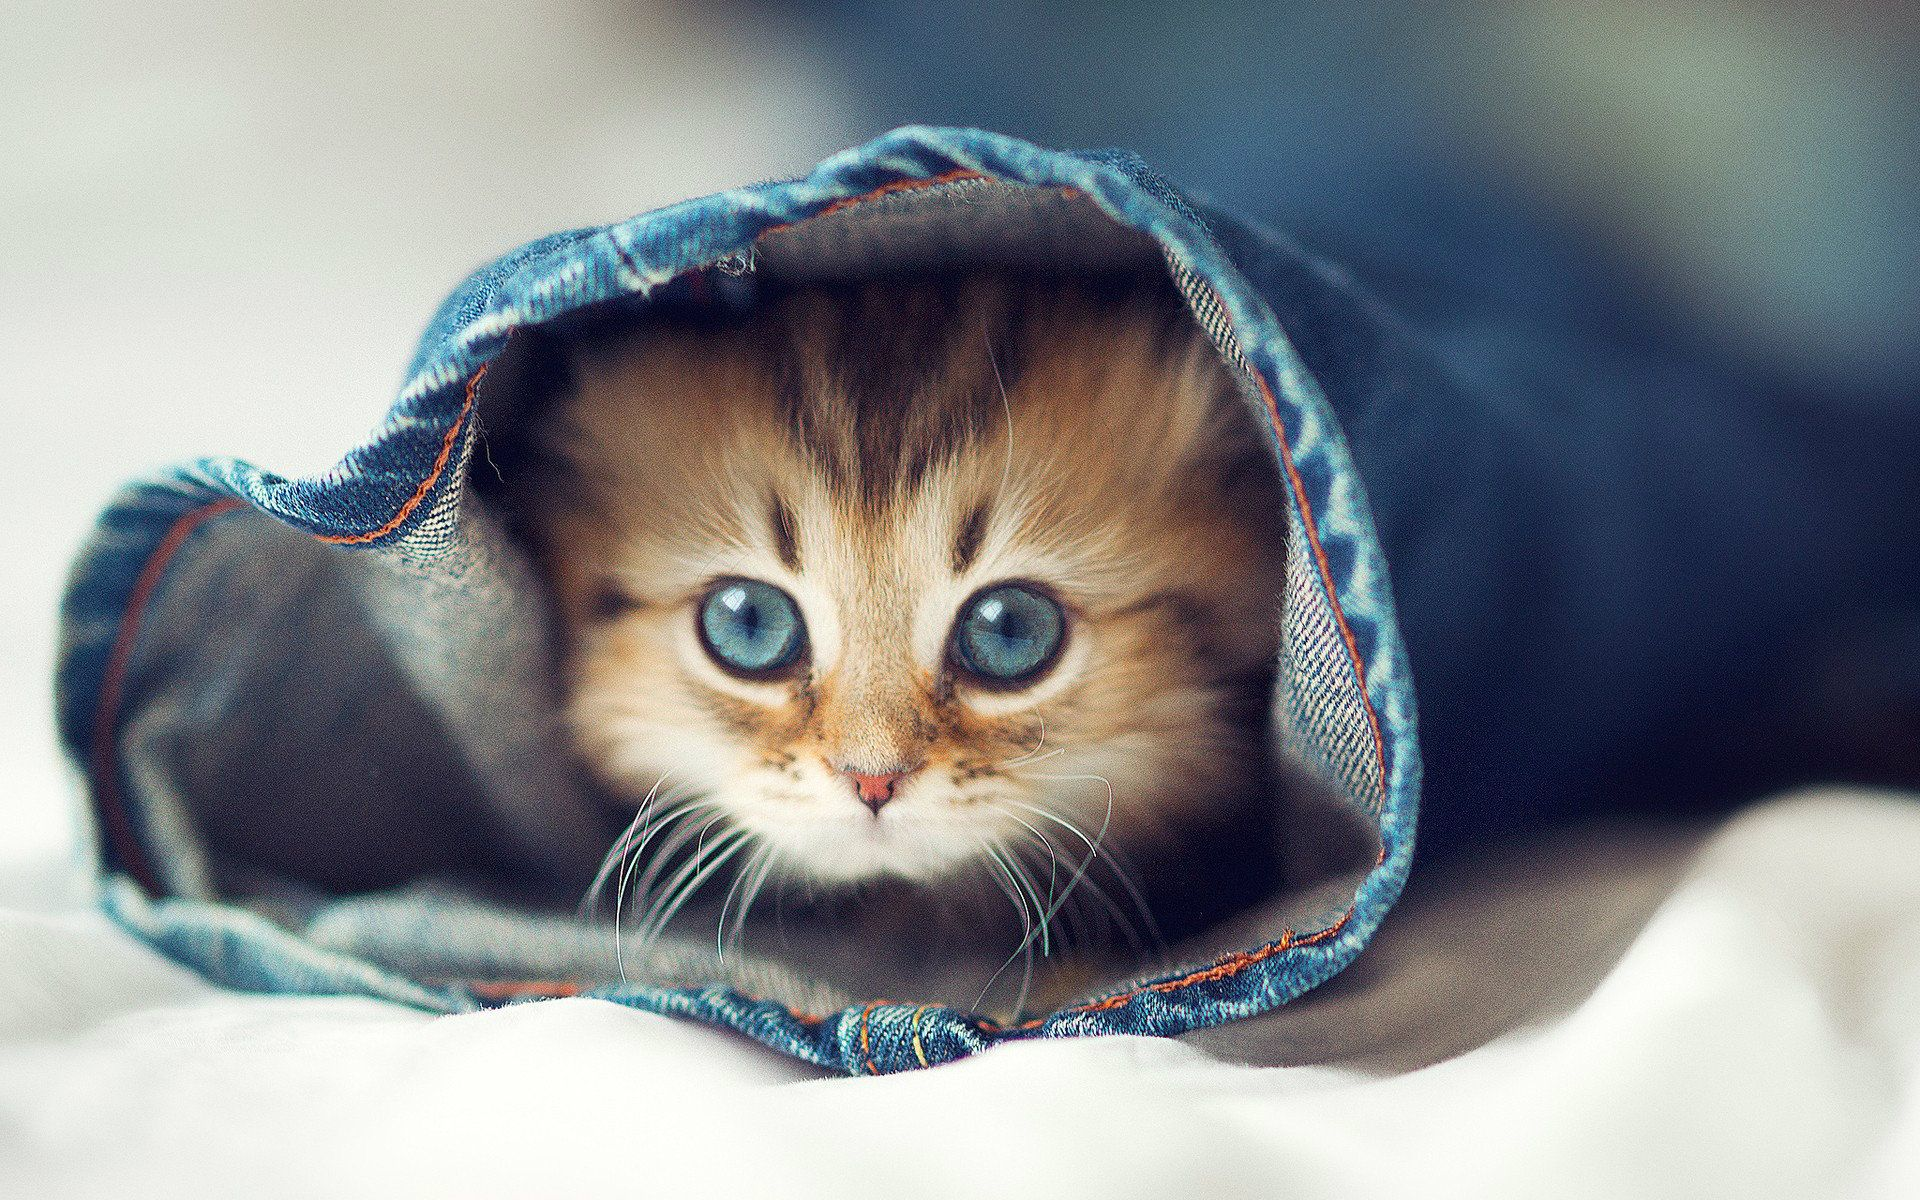 Most Beautiful Cats Wallpapers Hd Photos Images Download Hd Cute Cat Wallpaper Kittens Cutest Cute Animal Pictures